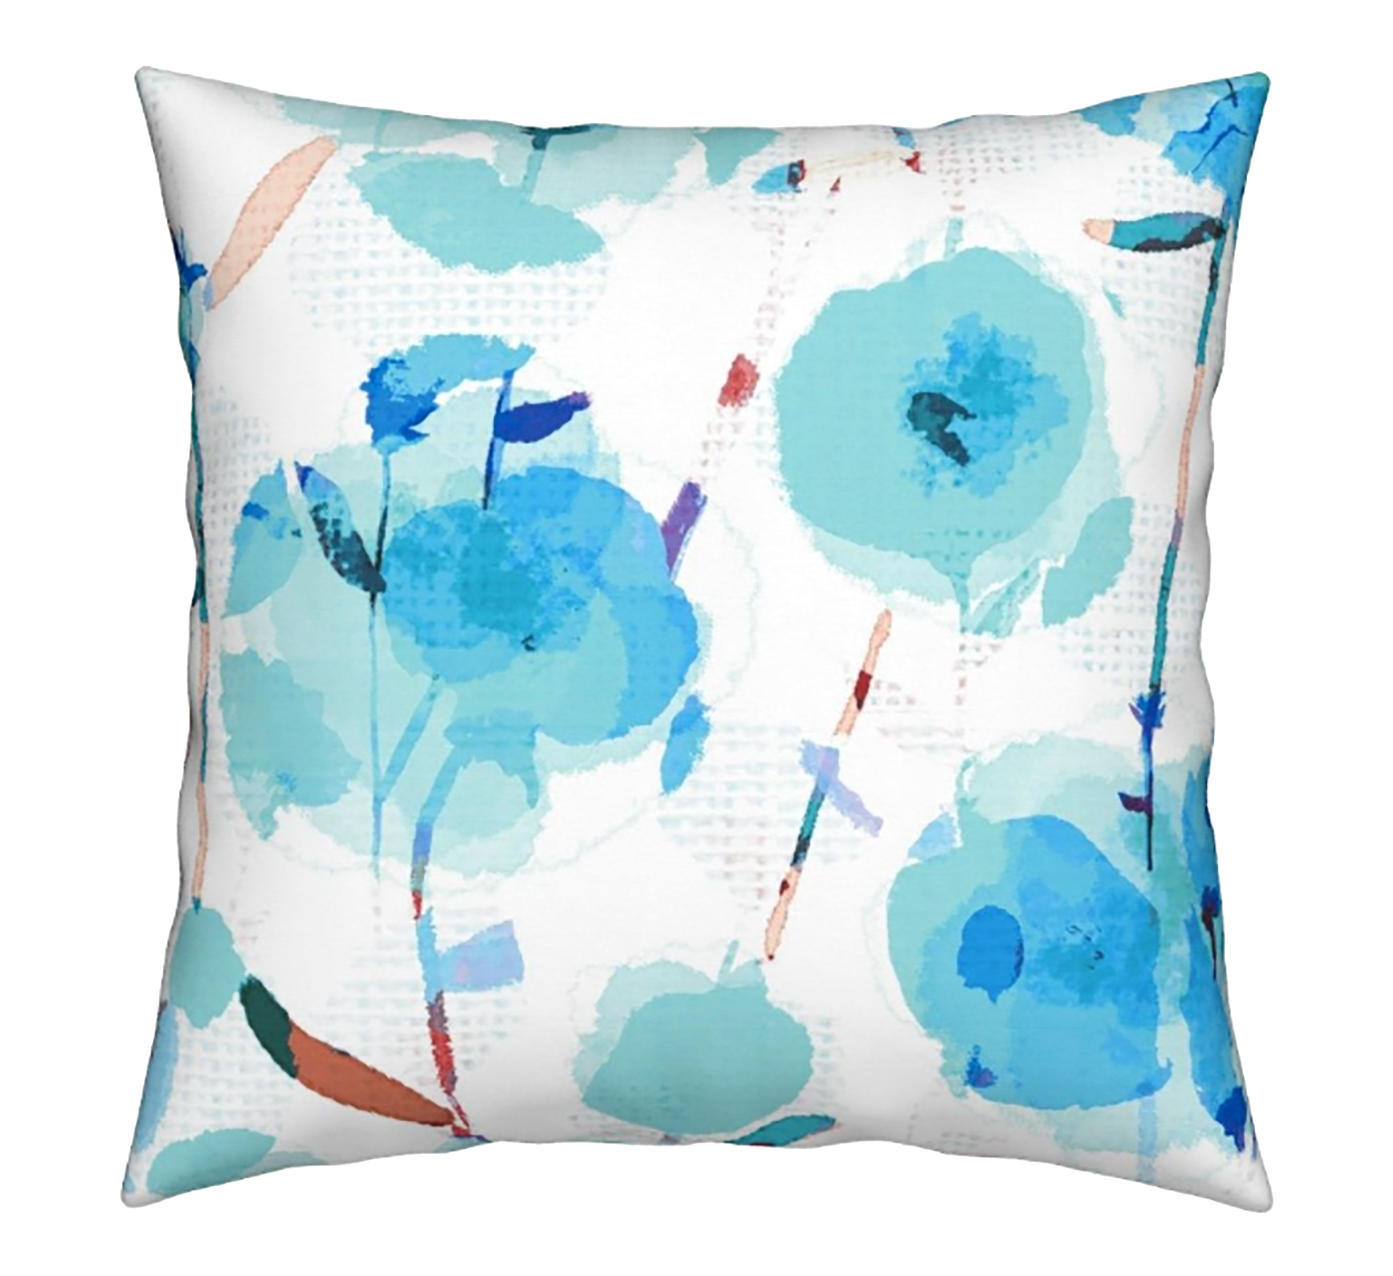 """Skylar Blooms"" print on the 18x 18 Catalan throw pillow    https://roostery.com/e?user=rachelle_caliolio_design"